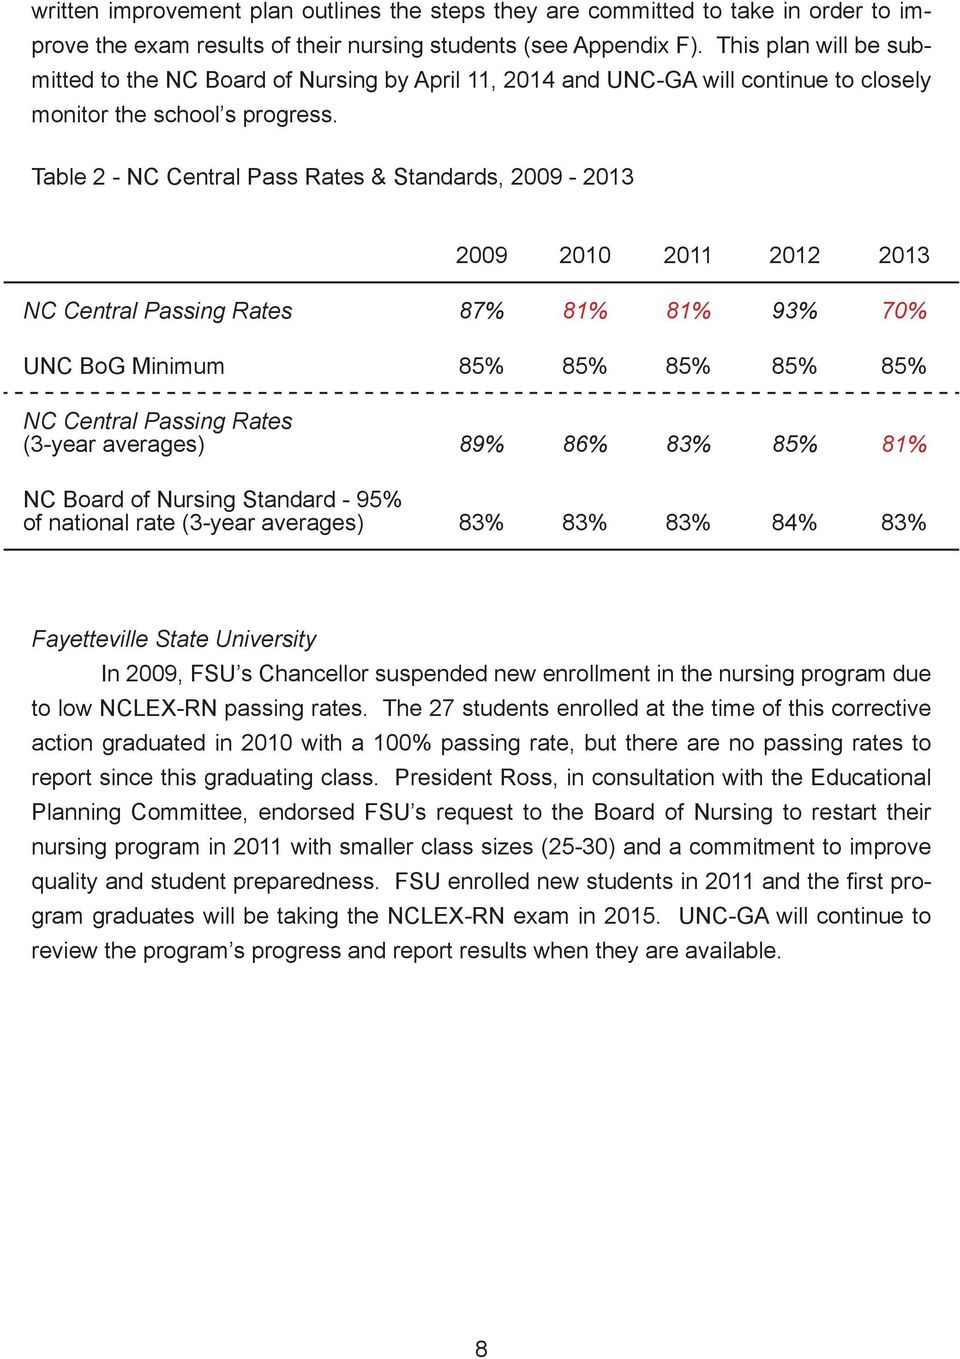 Table 2 - NC Central Pass Rates & Standards, 2009-2013 2009 2010 2011 2012 2013 NC Central Passing Rates 87% 81% 81% 93% 70% UNC BoG Minimum 85% 85% 85% 85% 85% NC Central Passing Rates (3-year